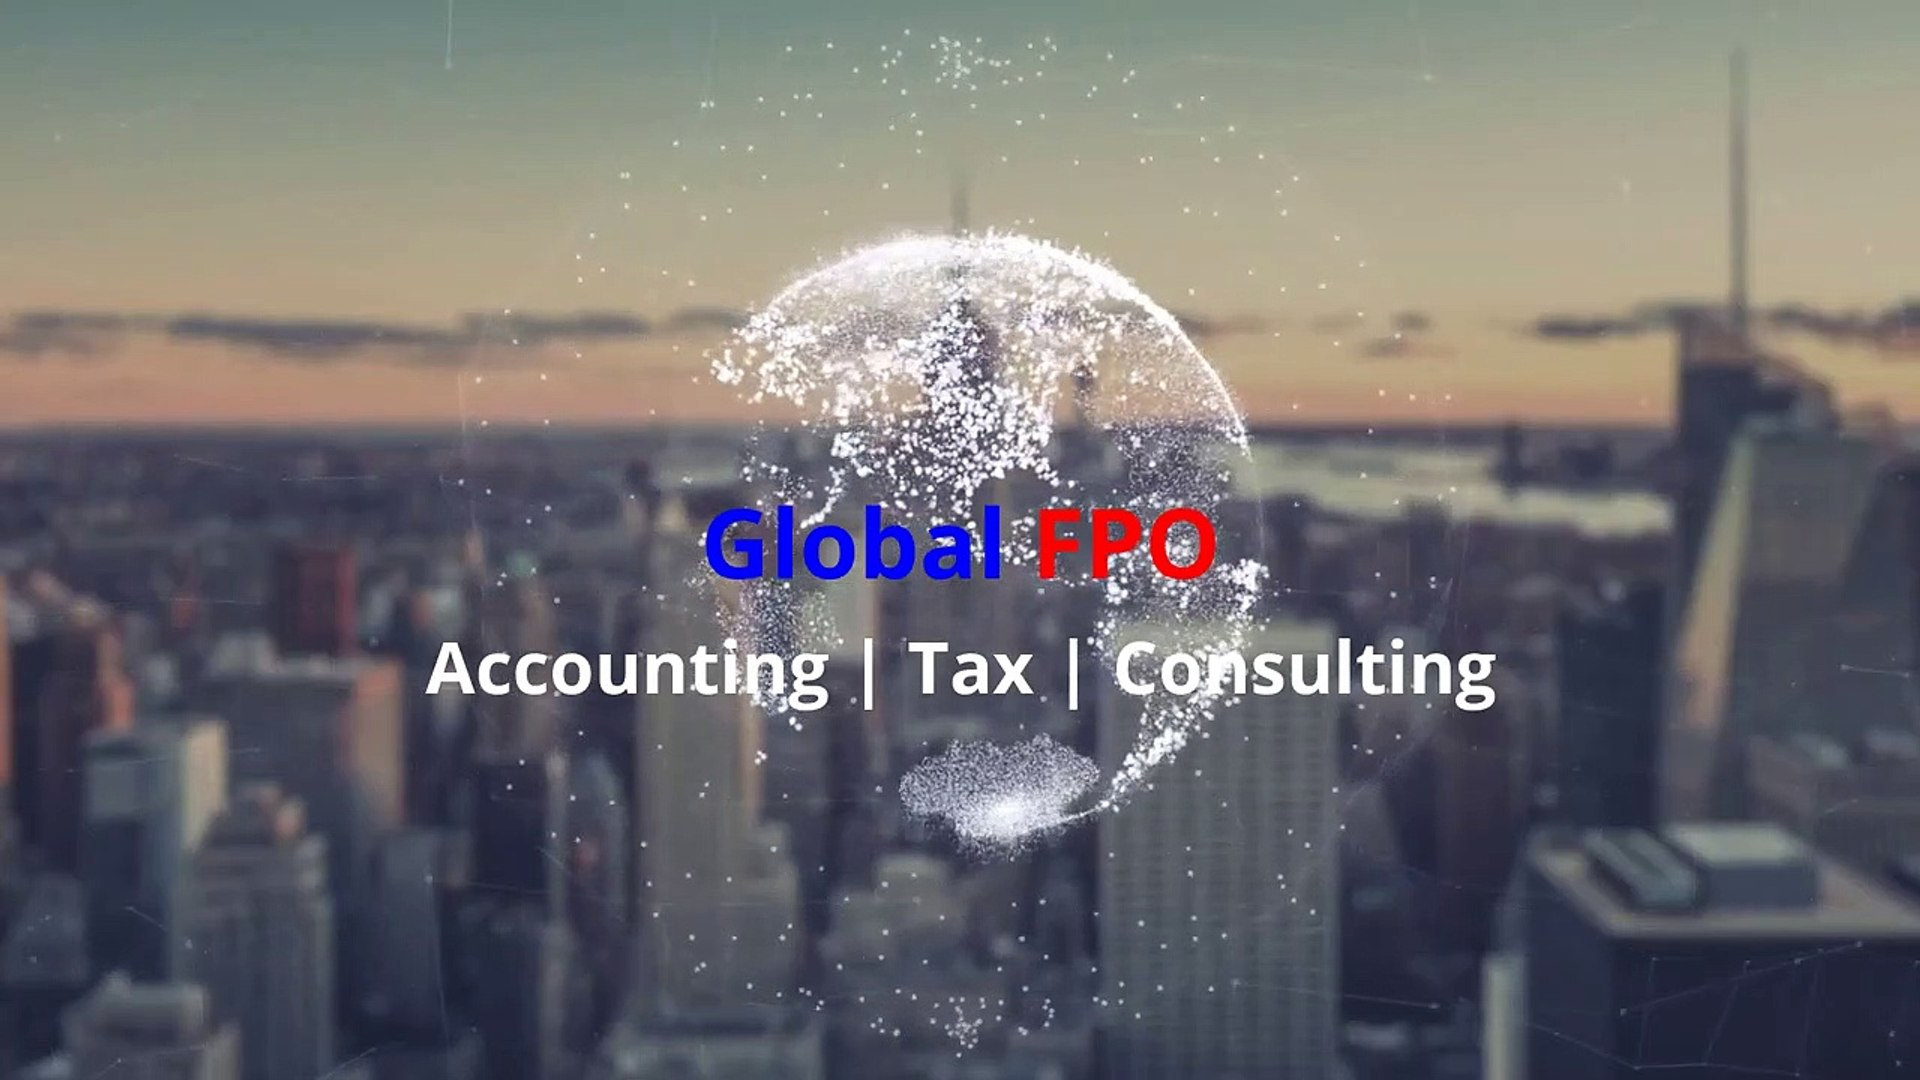 Global FPO - Bookkeeping Services - USA, Canada,UK, Australia & Middle East